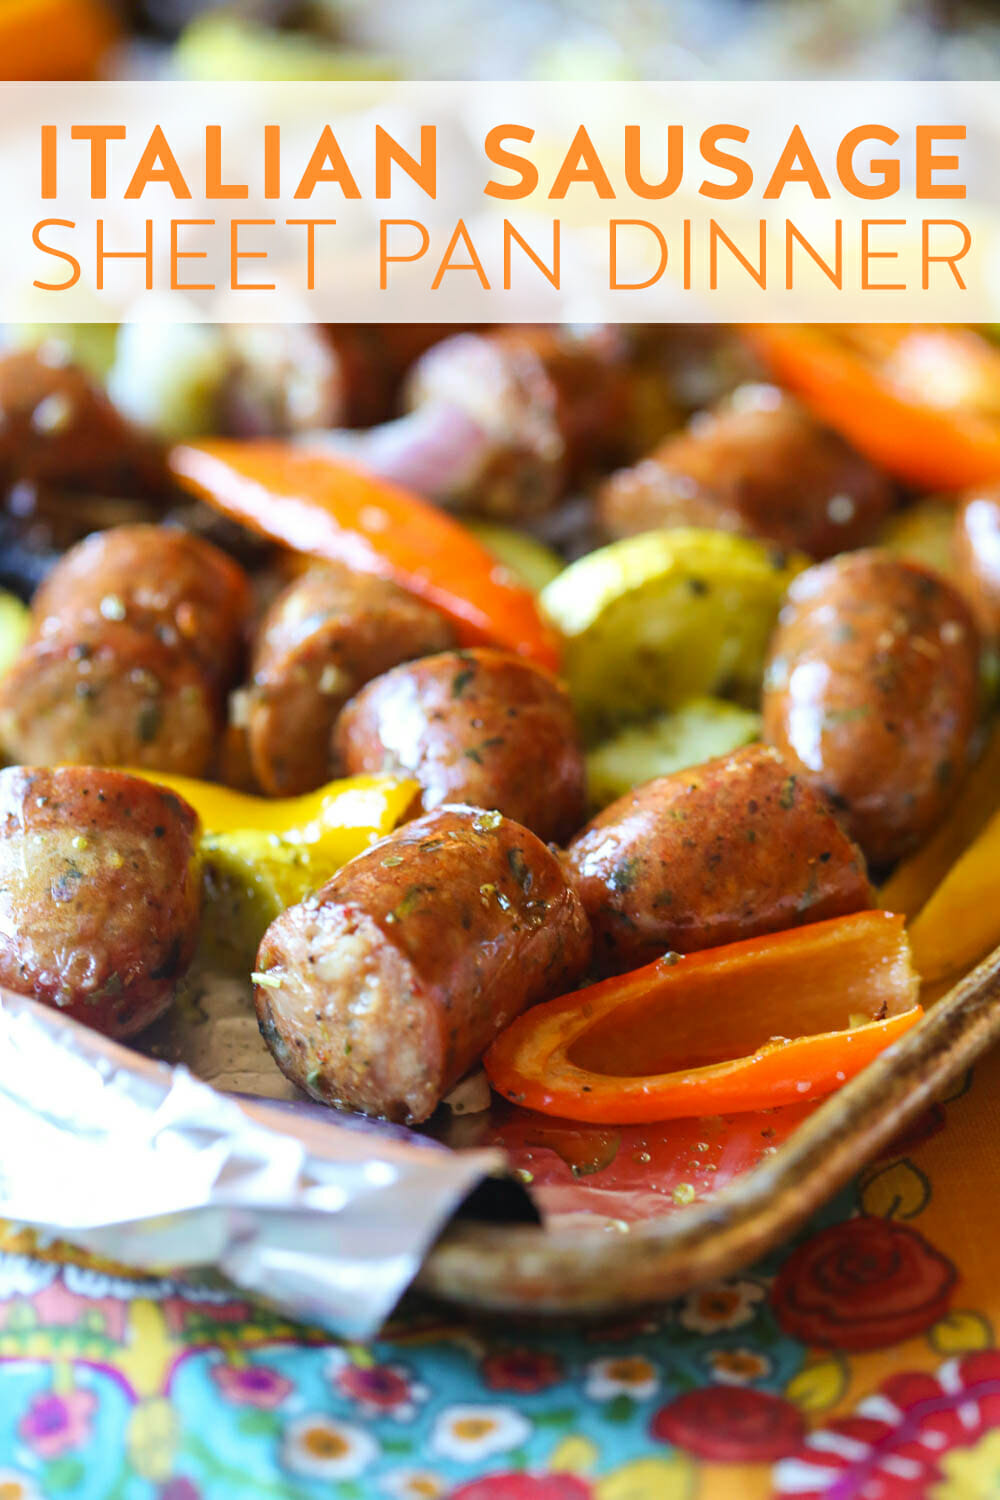 Italian sausage sheet pan dinner from Our Best Bites